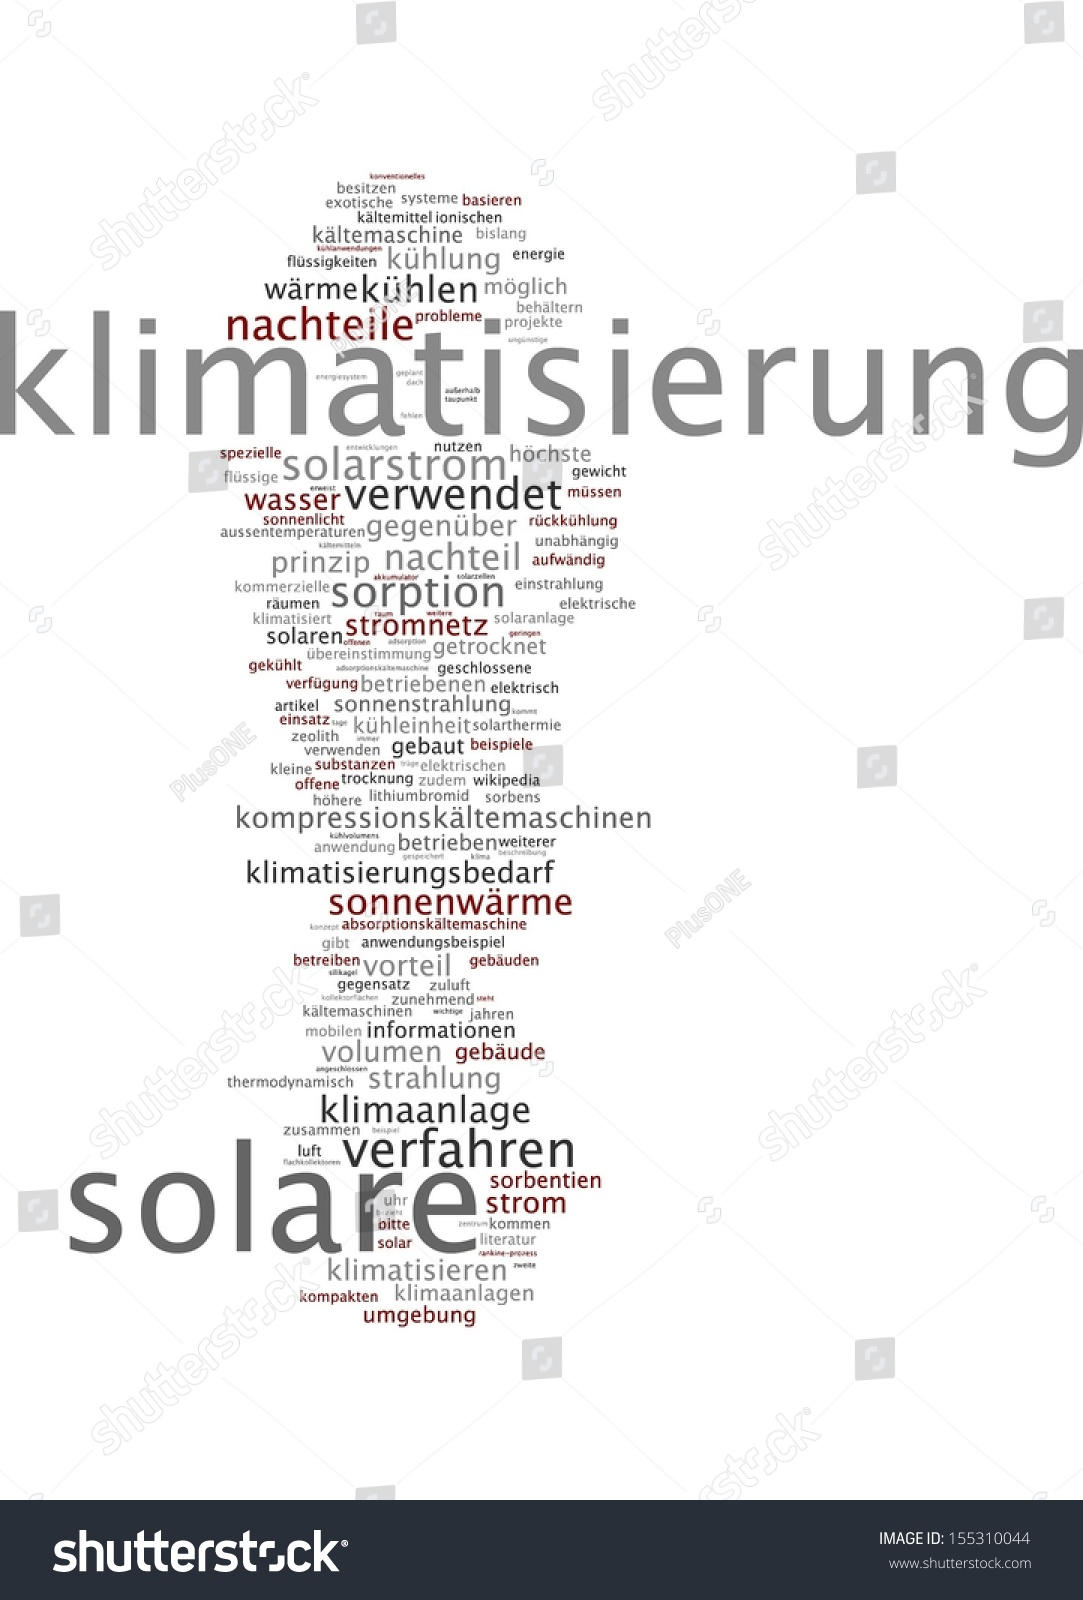 Nachteile Solarenergie Word Cloud Solar Air Conditioning Stock Illustration 155310044